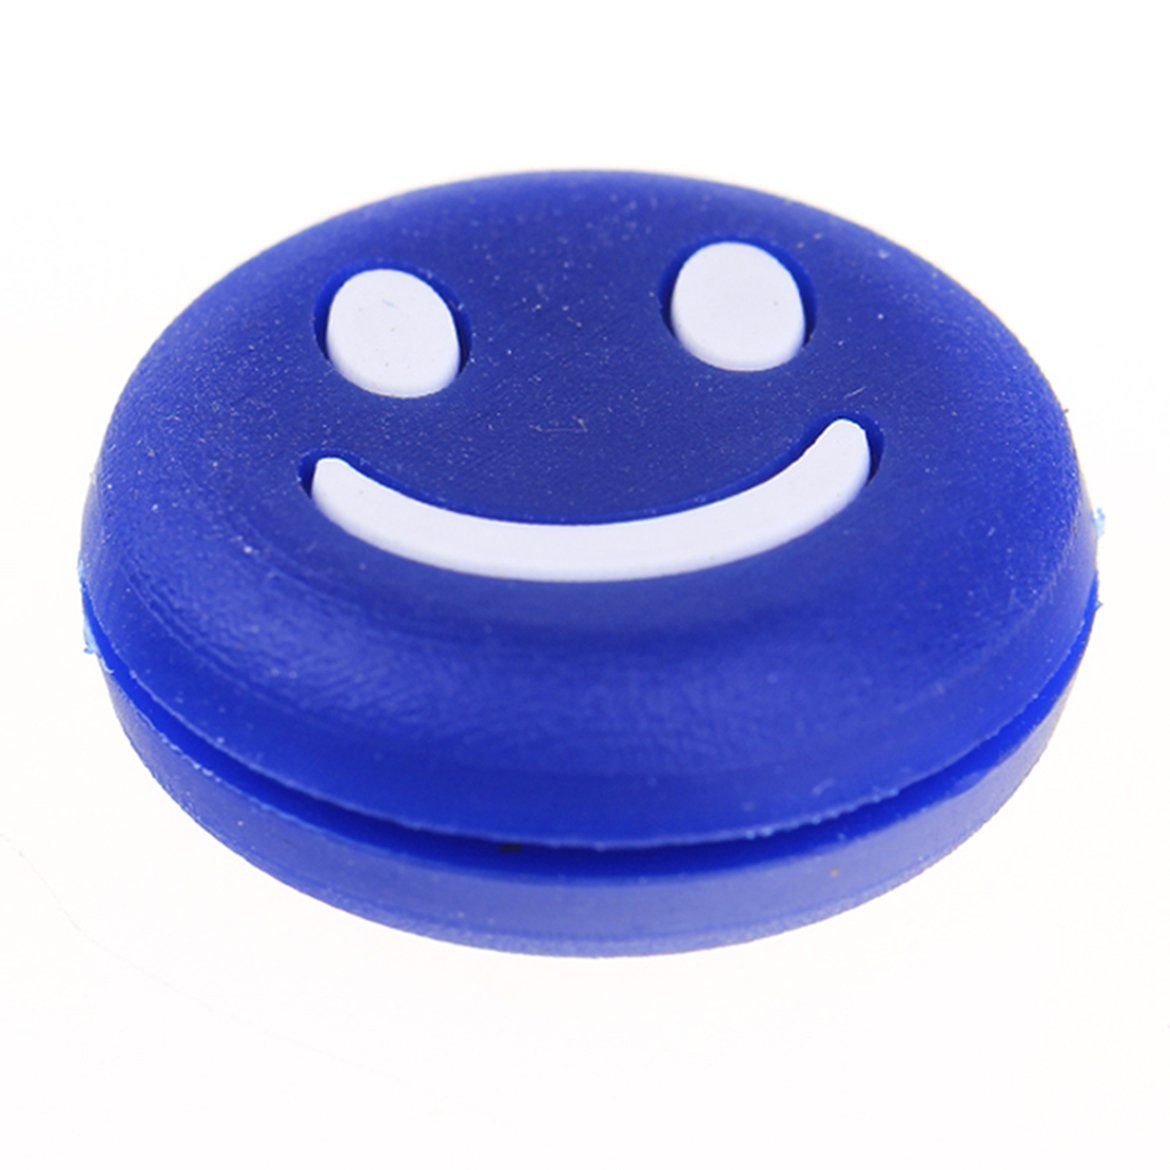 3pcs Silicone Smile Face Tennis Racquet Vibration Dampener Shock Absorber by GAOHOU